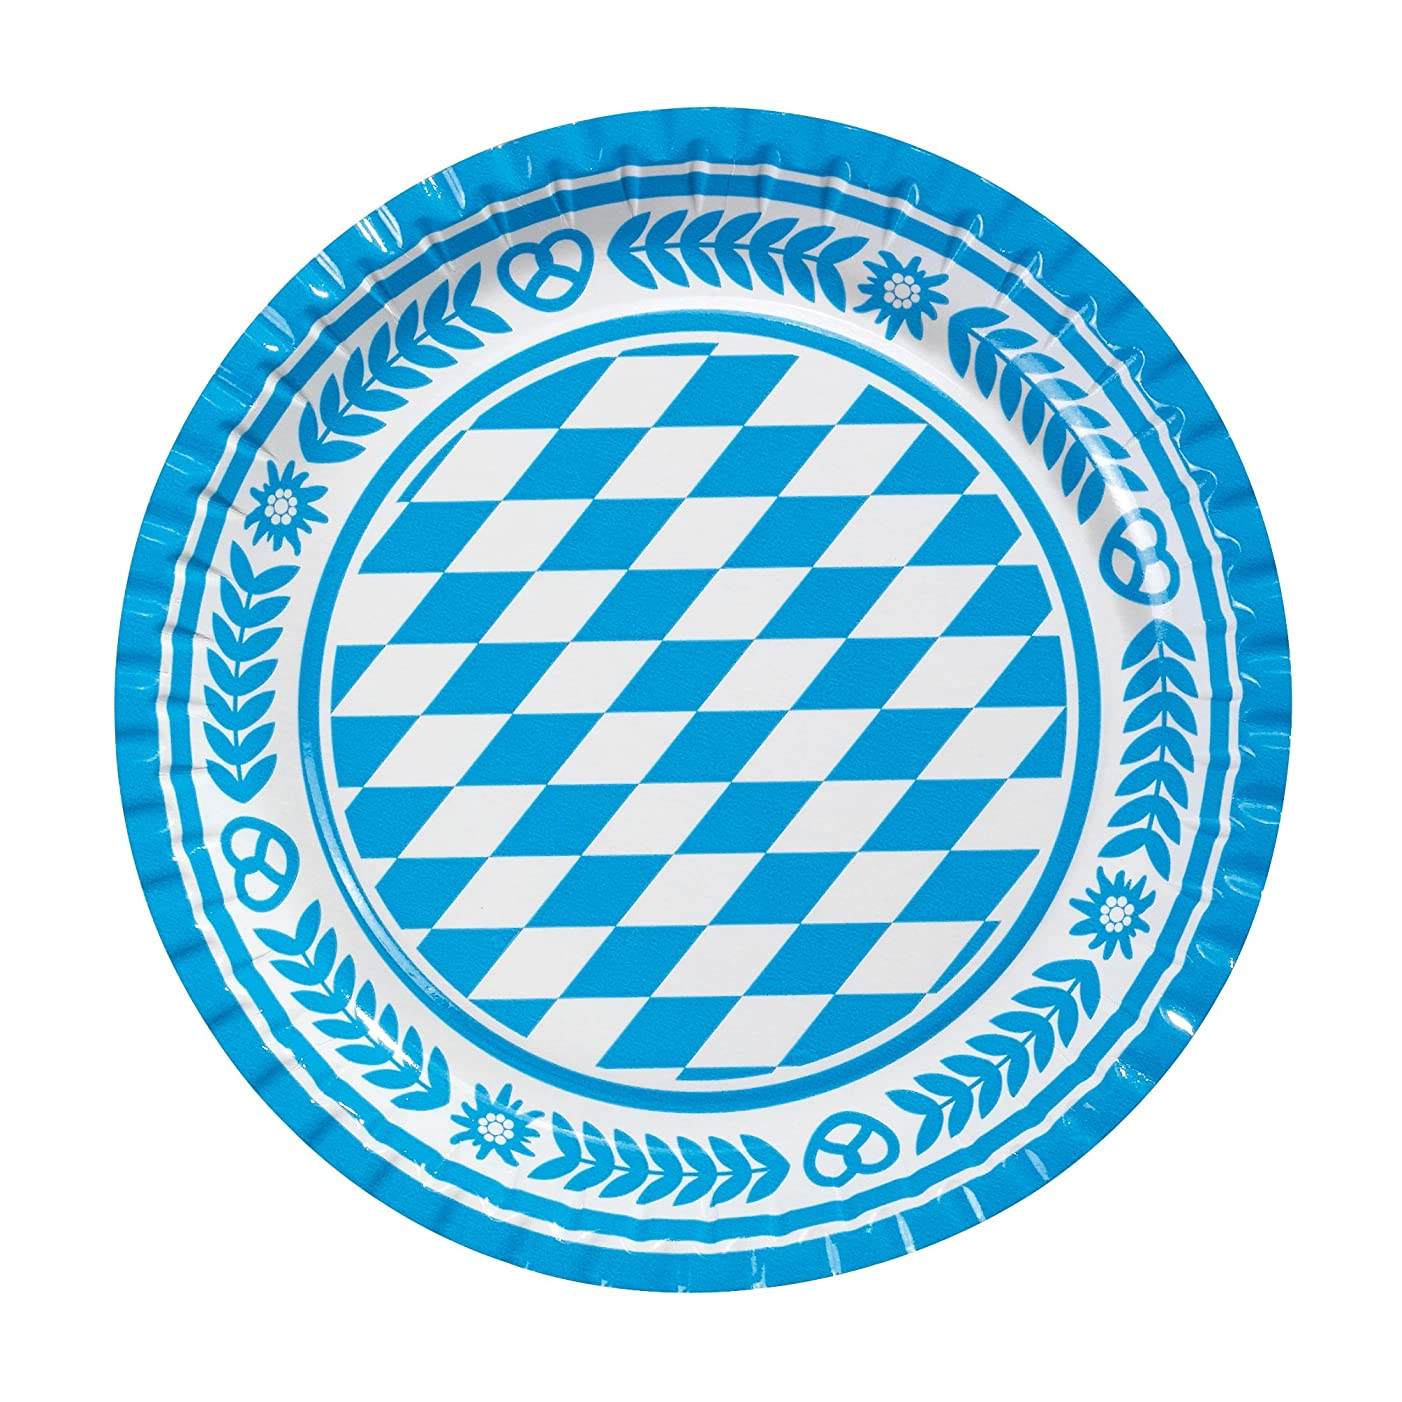 Susy Card 11095585 Plate with Bavarian Rhombus Design 23 cm Pack of 10